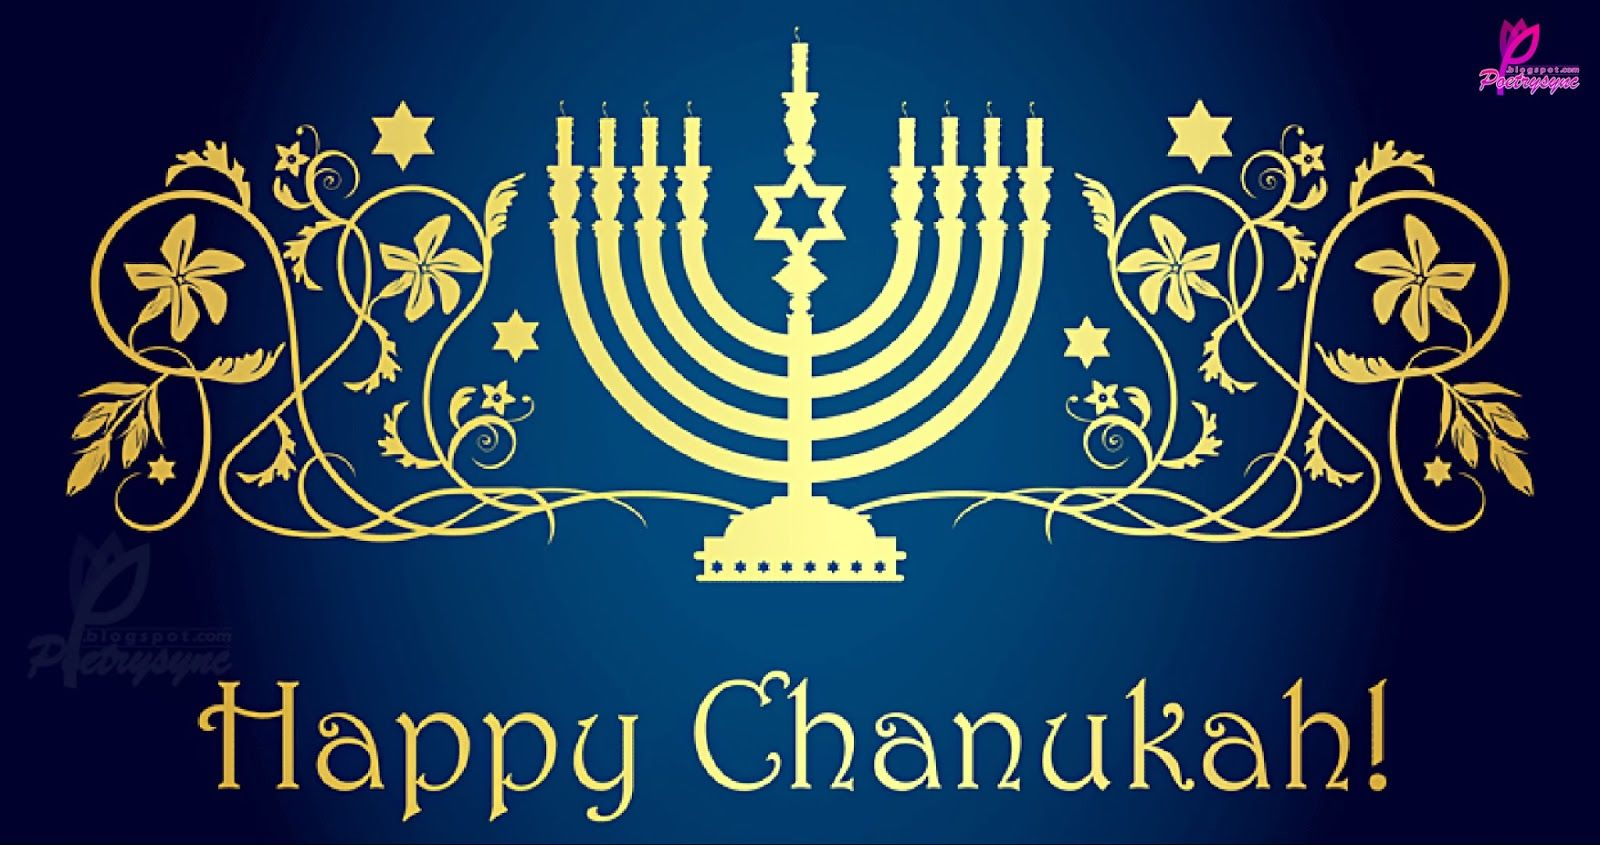 Chanukah Eve: 1 Candle